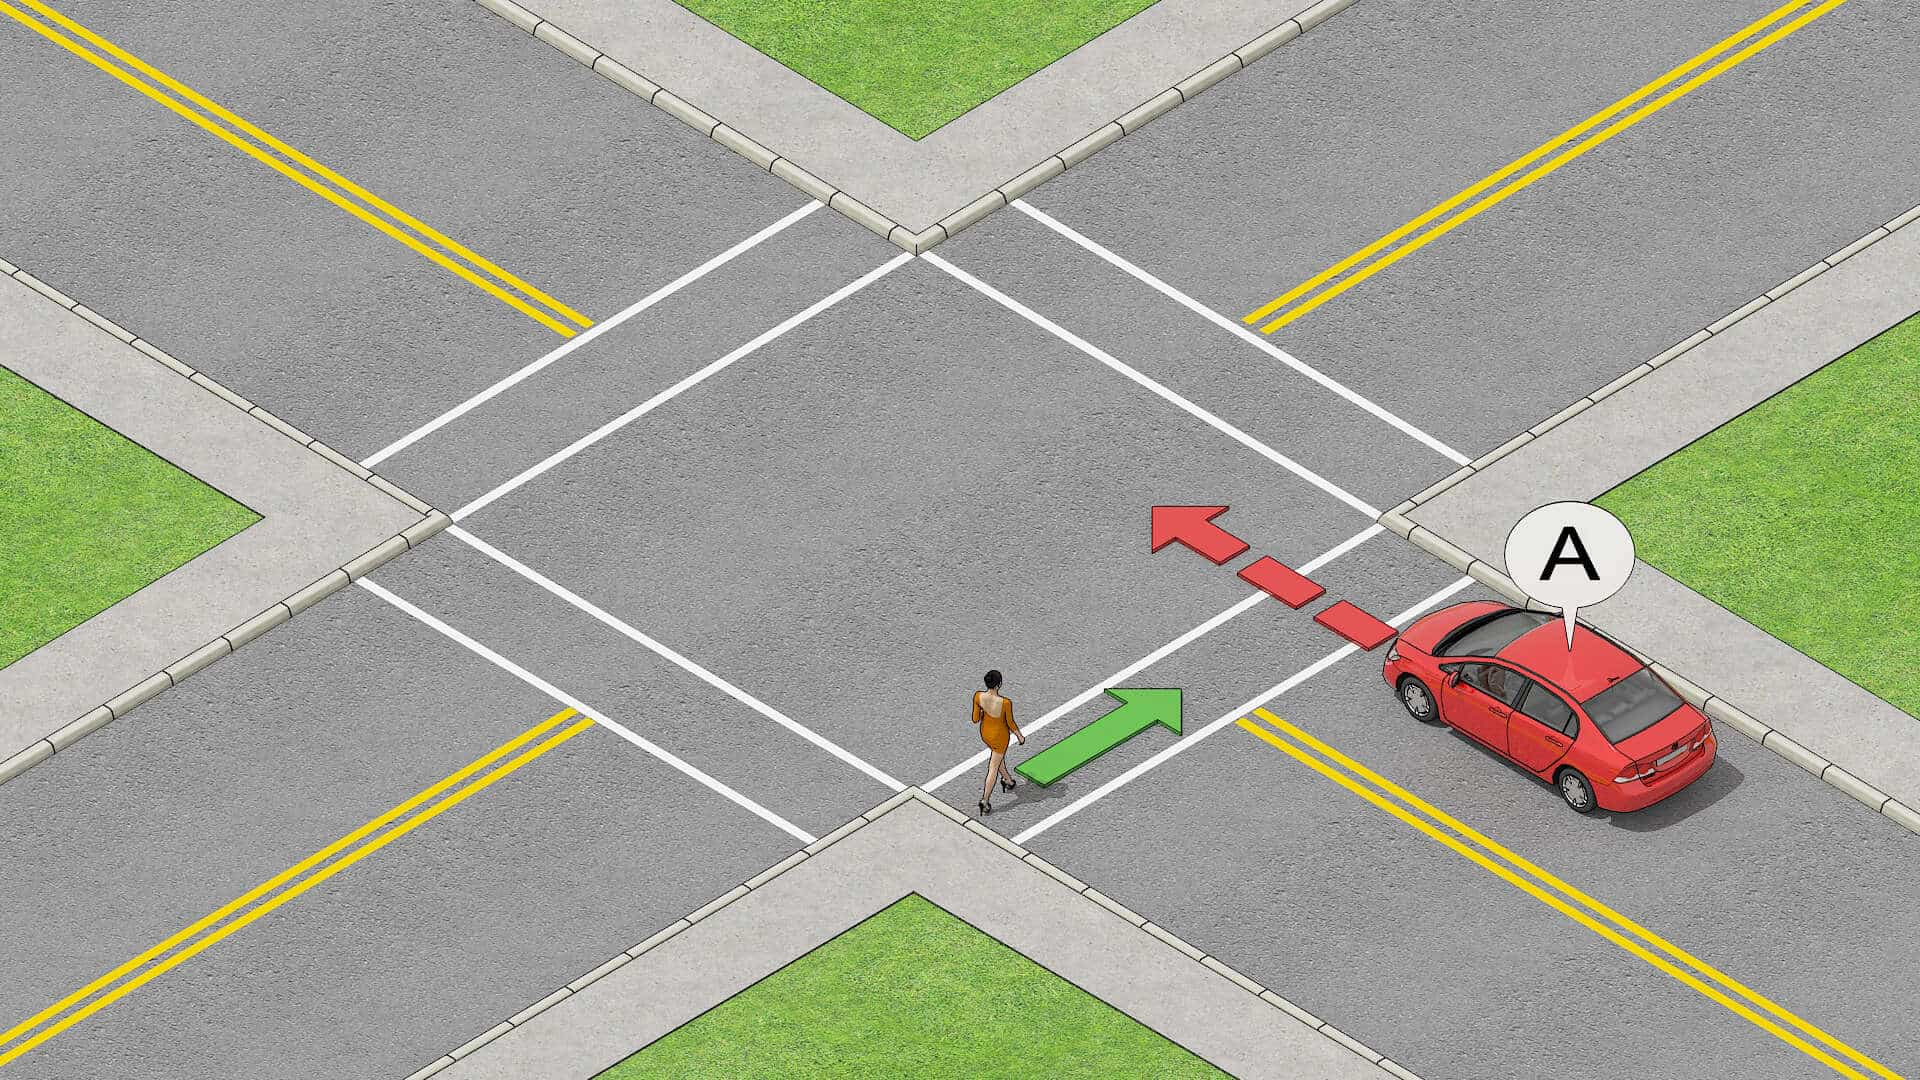 Driver yields to pedestrian at intersection before proceeding.